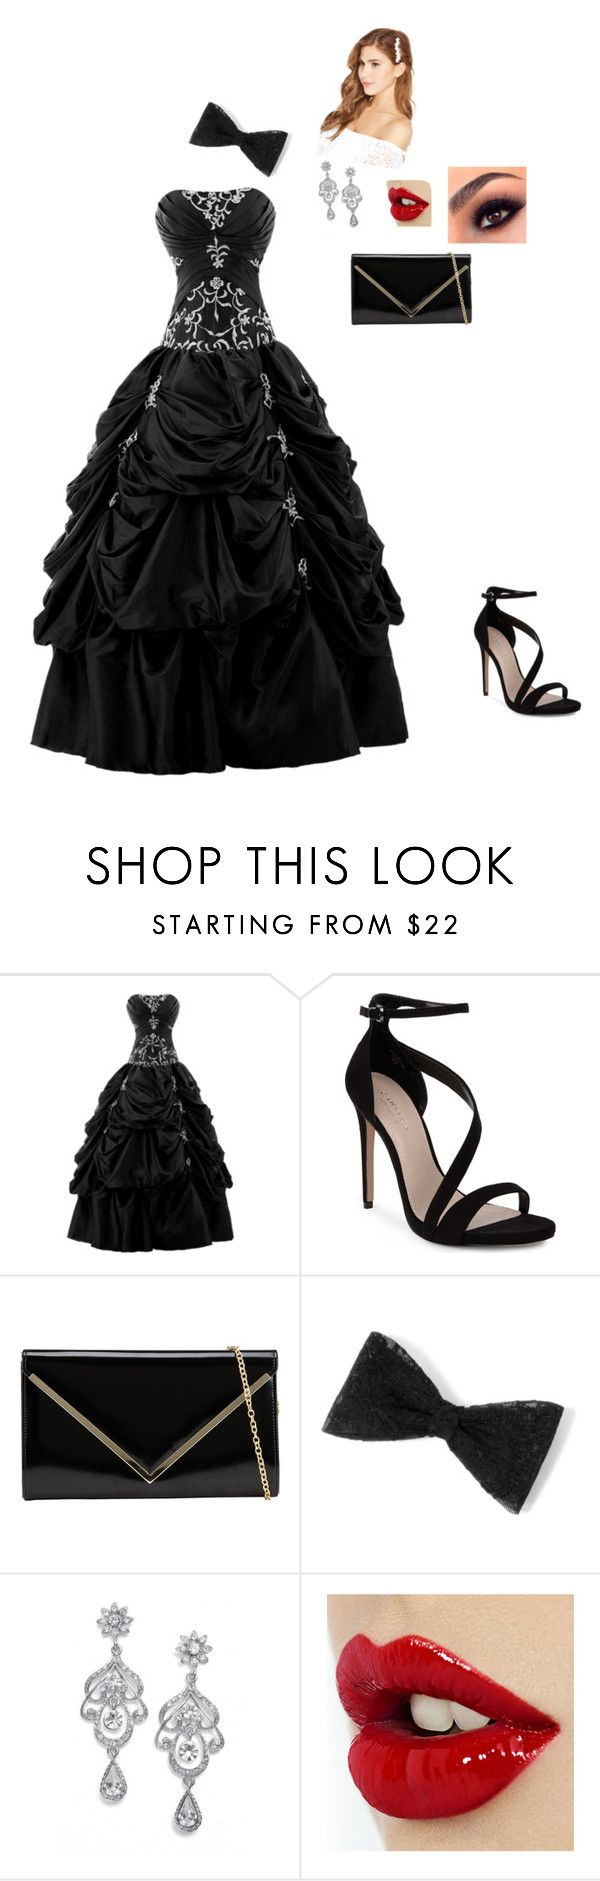 """My cousin made this set !! ❤️❤️"" by lissette-styles ❤ liked on Polyvore featuring Carvela, ALDO and pretty"